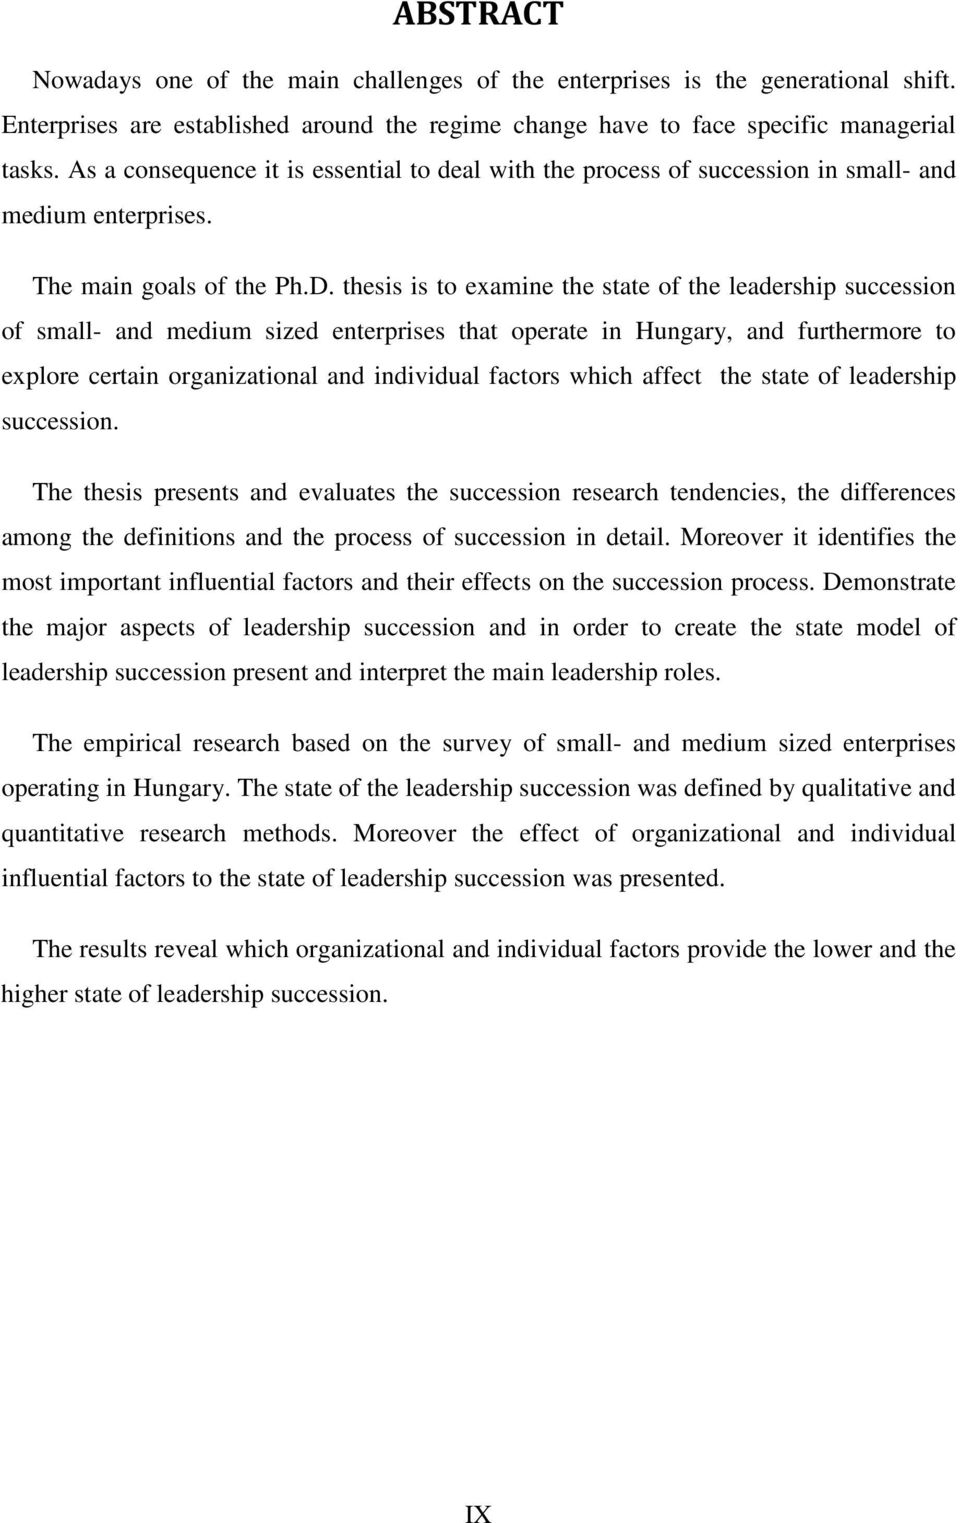 thesis is to examine the state of the leadership succession of small- and medium sized enterprises that operate in Hungary, and furthermore to explore certain organizational and individual factors